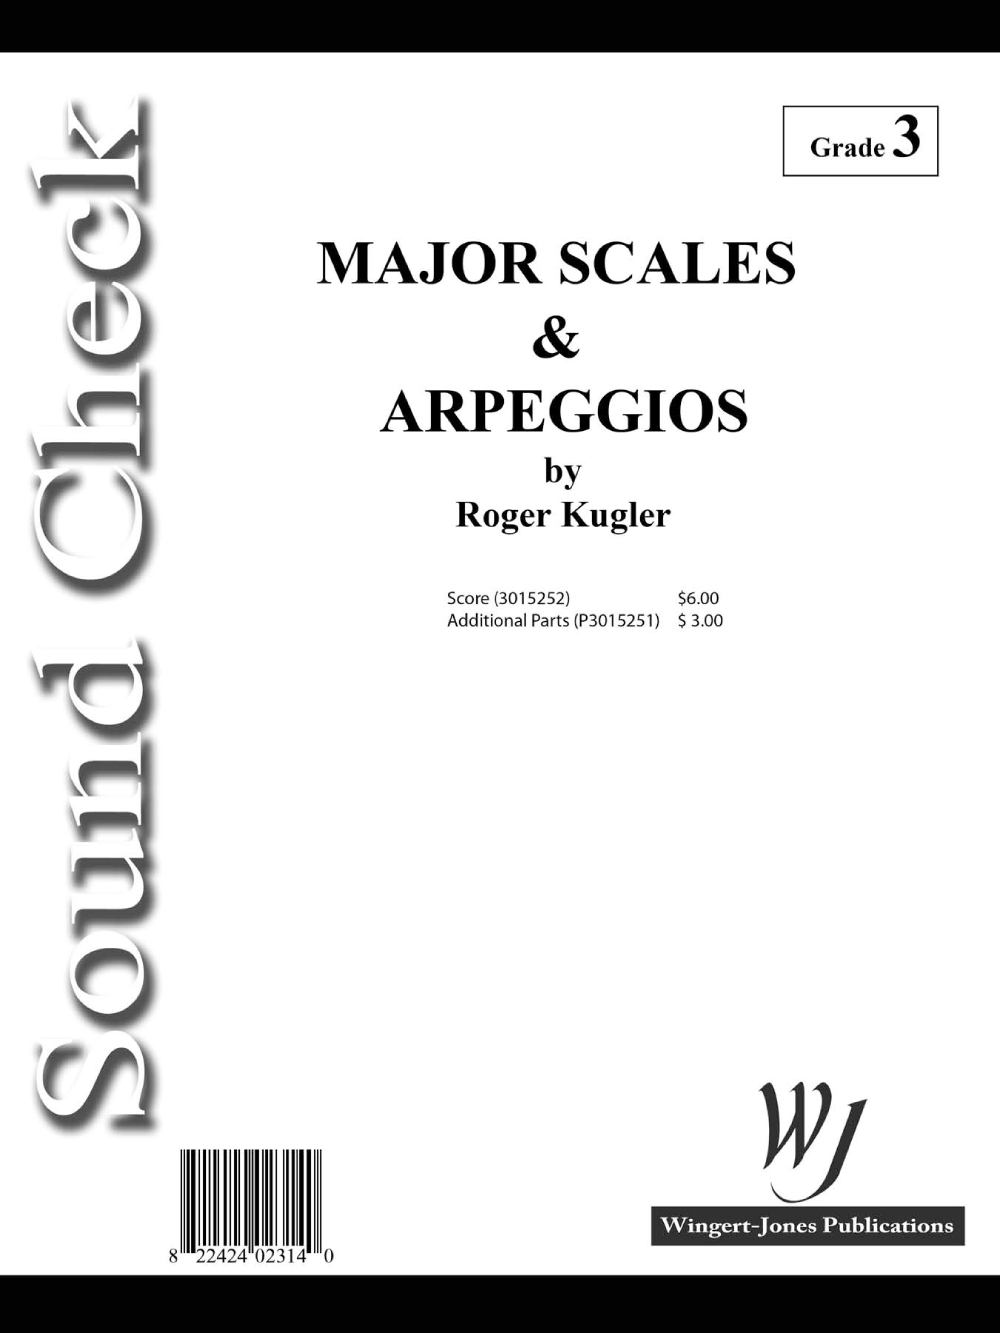 Major Scales and Arpeggios by Roger Kugler| J.W. Pepper